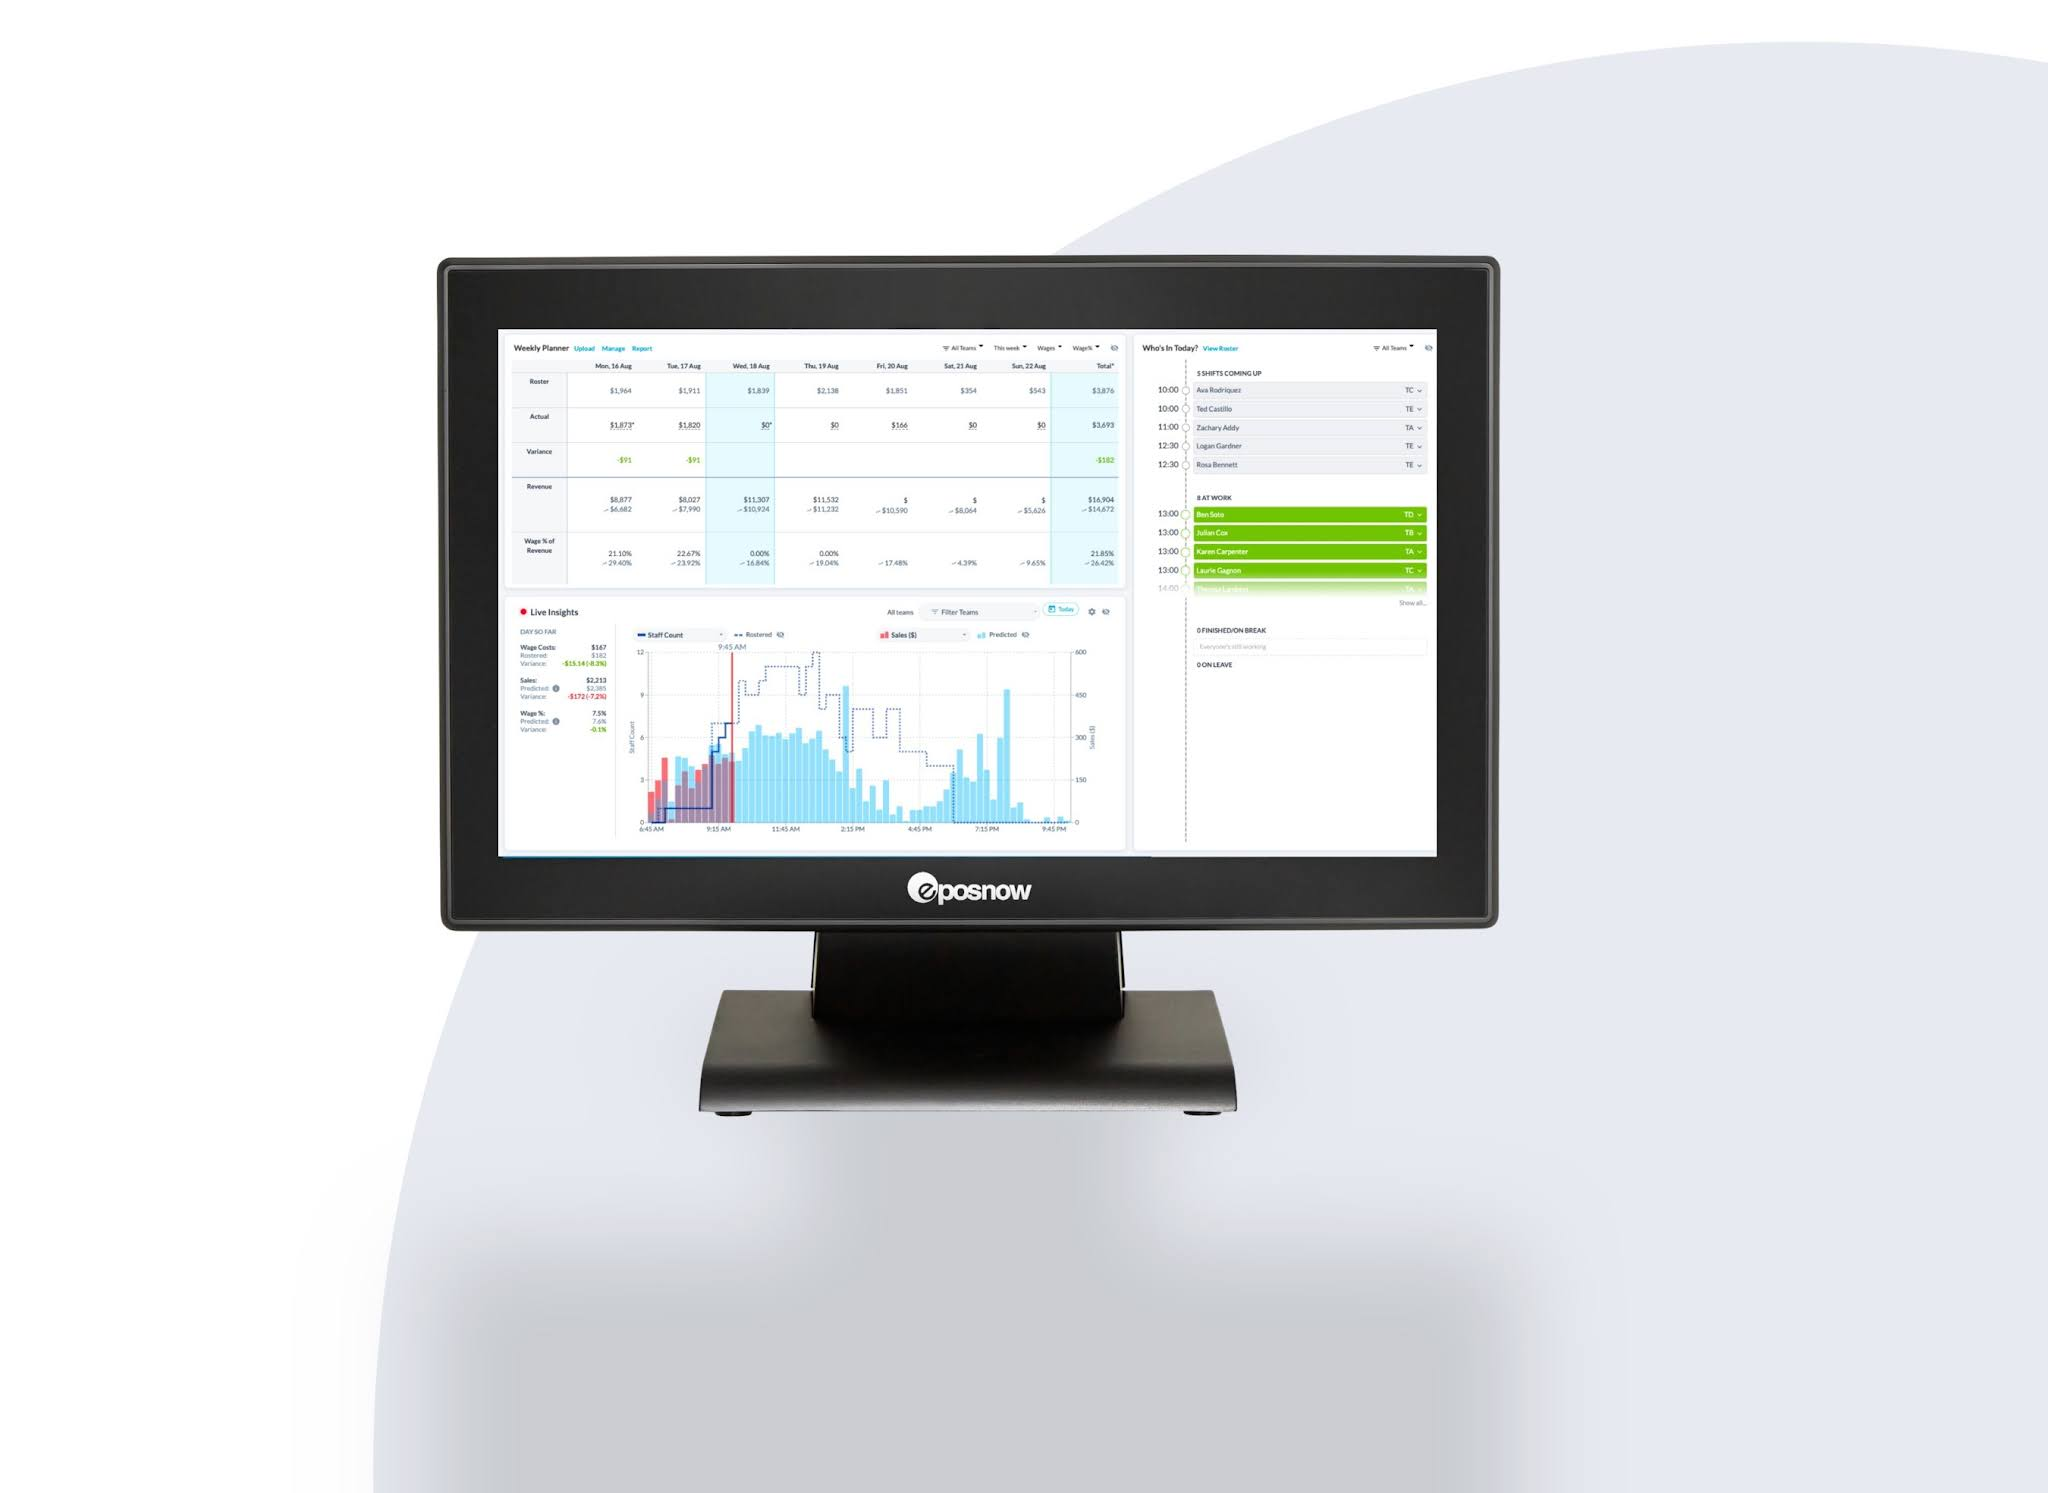 Epos Now Announces New Partnership With Workforce Management Tool, Tanda